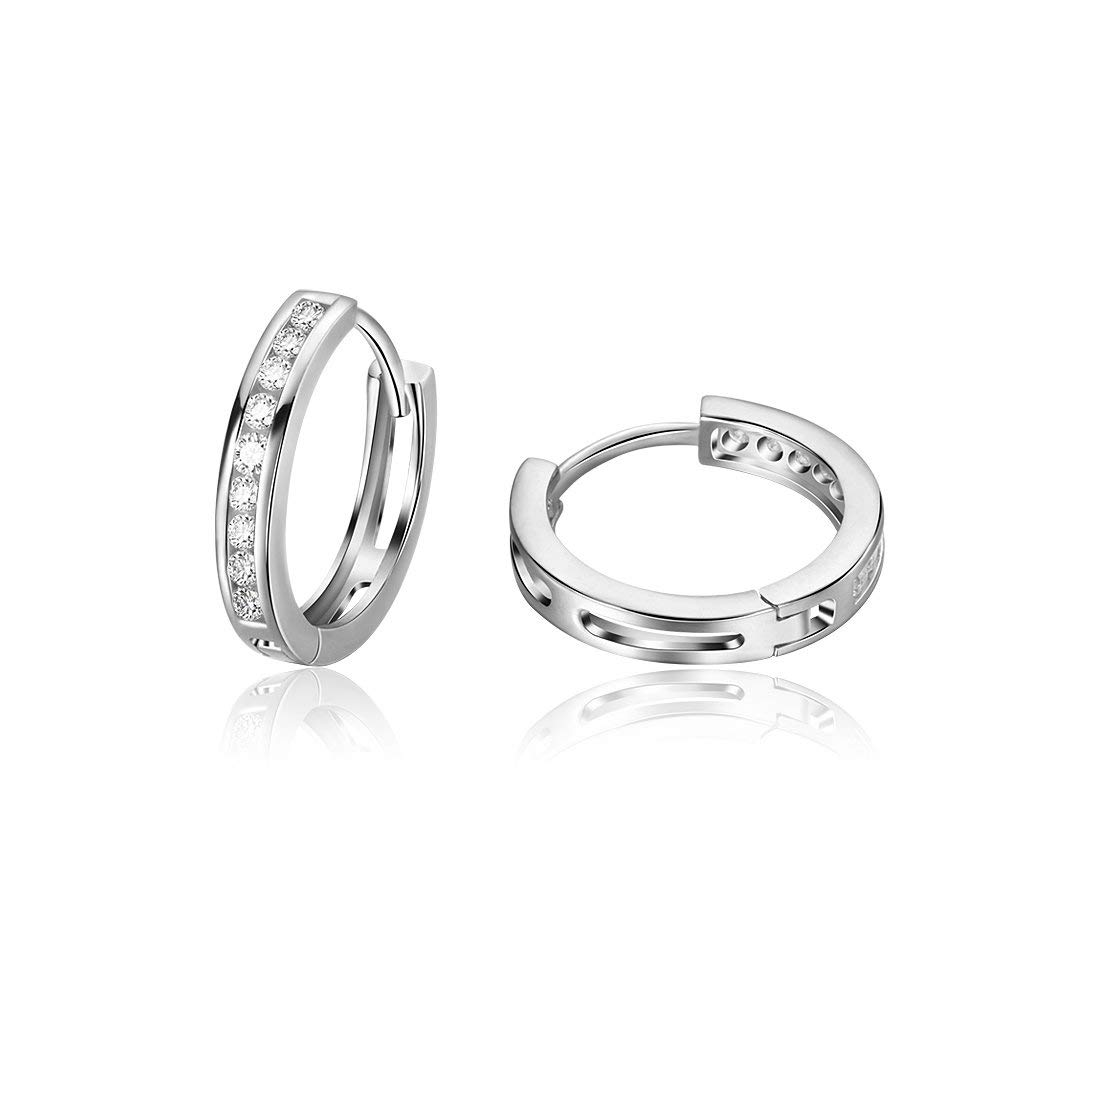 Carleen 925 Sterling Silver Channel Set Round Cut 9-stone Cubic Zirconia CZ Hinged Hoop Earrings for Women Girls Diameter 1.8cm